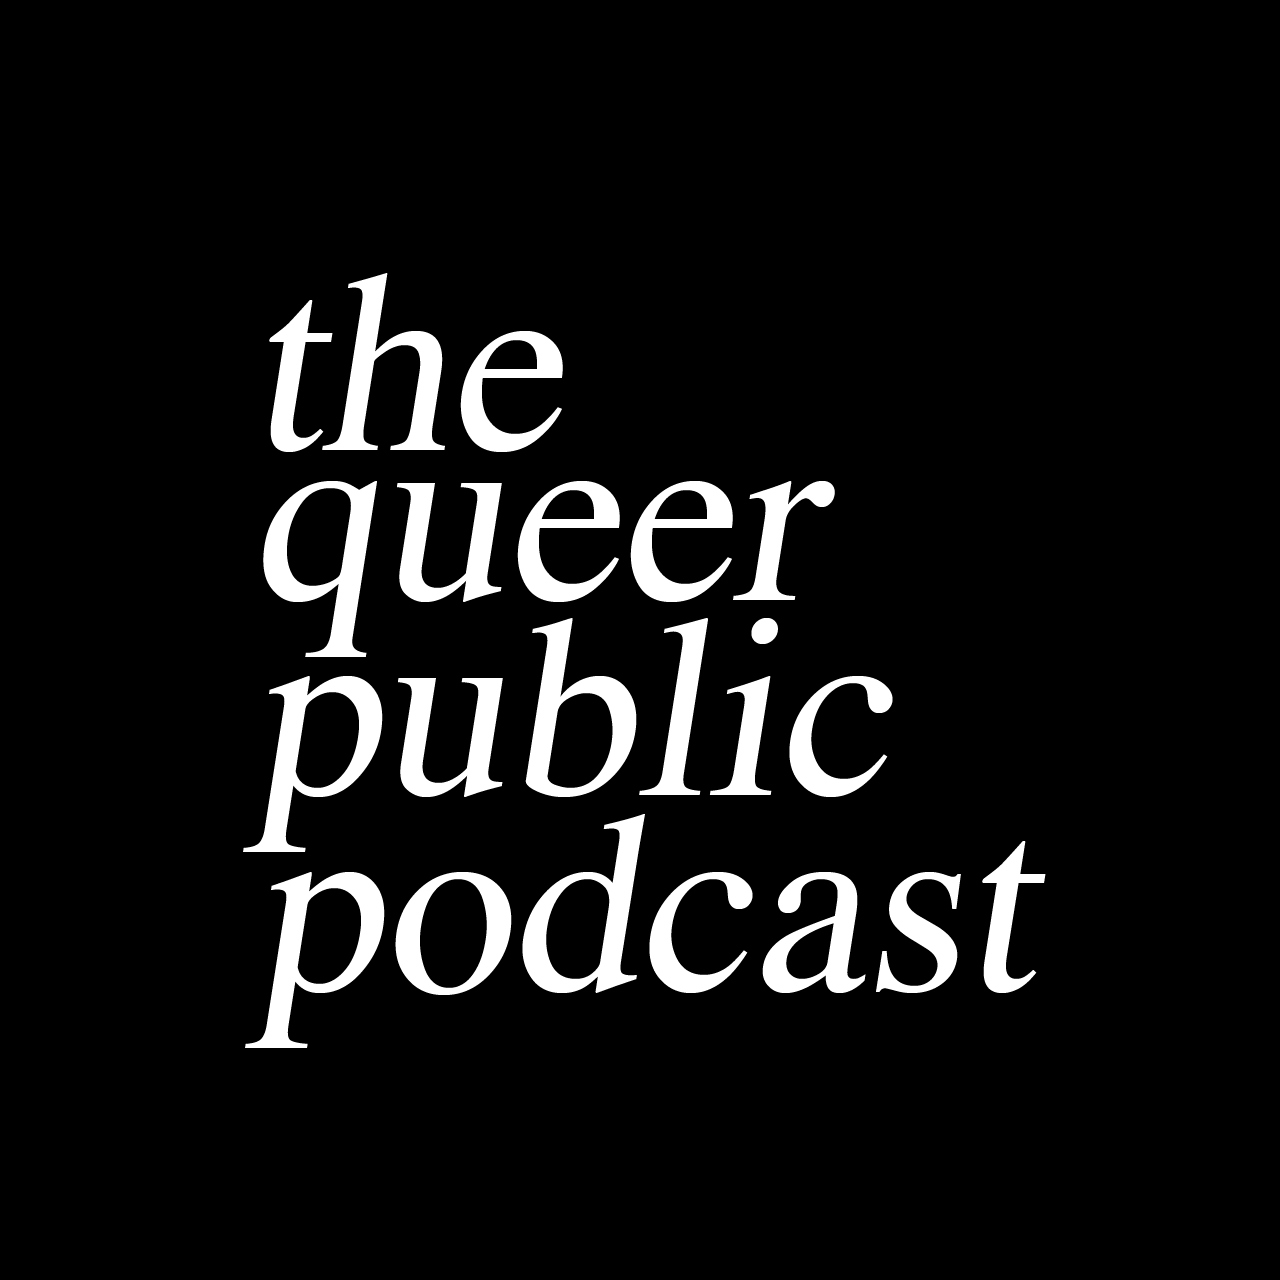 Real life, queer life. - Narrative podcast series produced by Erin McGregor, editing and sound design by Ariana Martinez, music supervision by Lynn Casper of the Homoground Podcast.